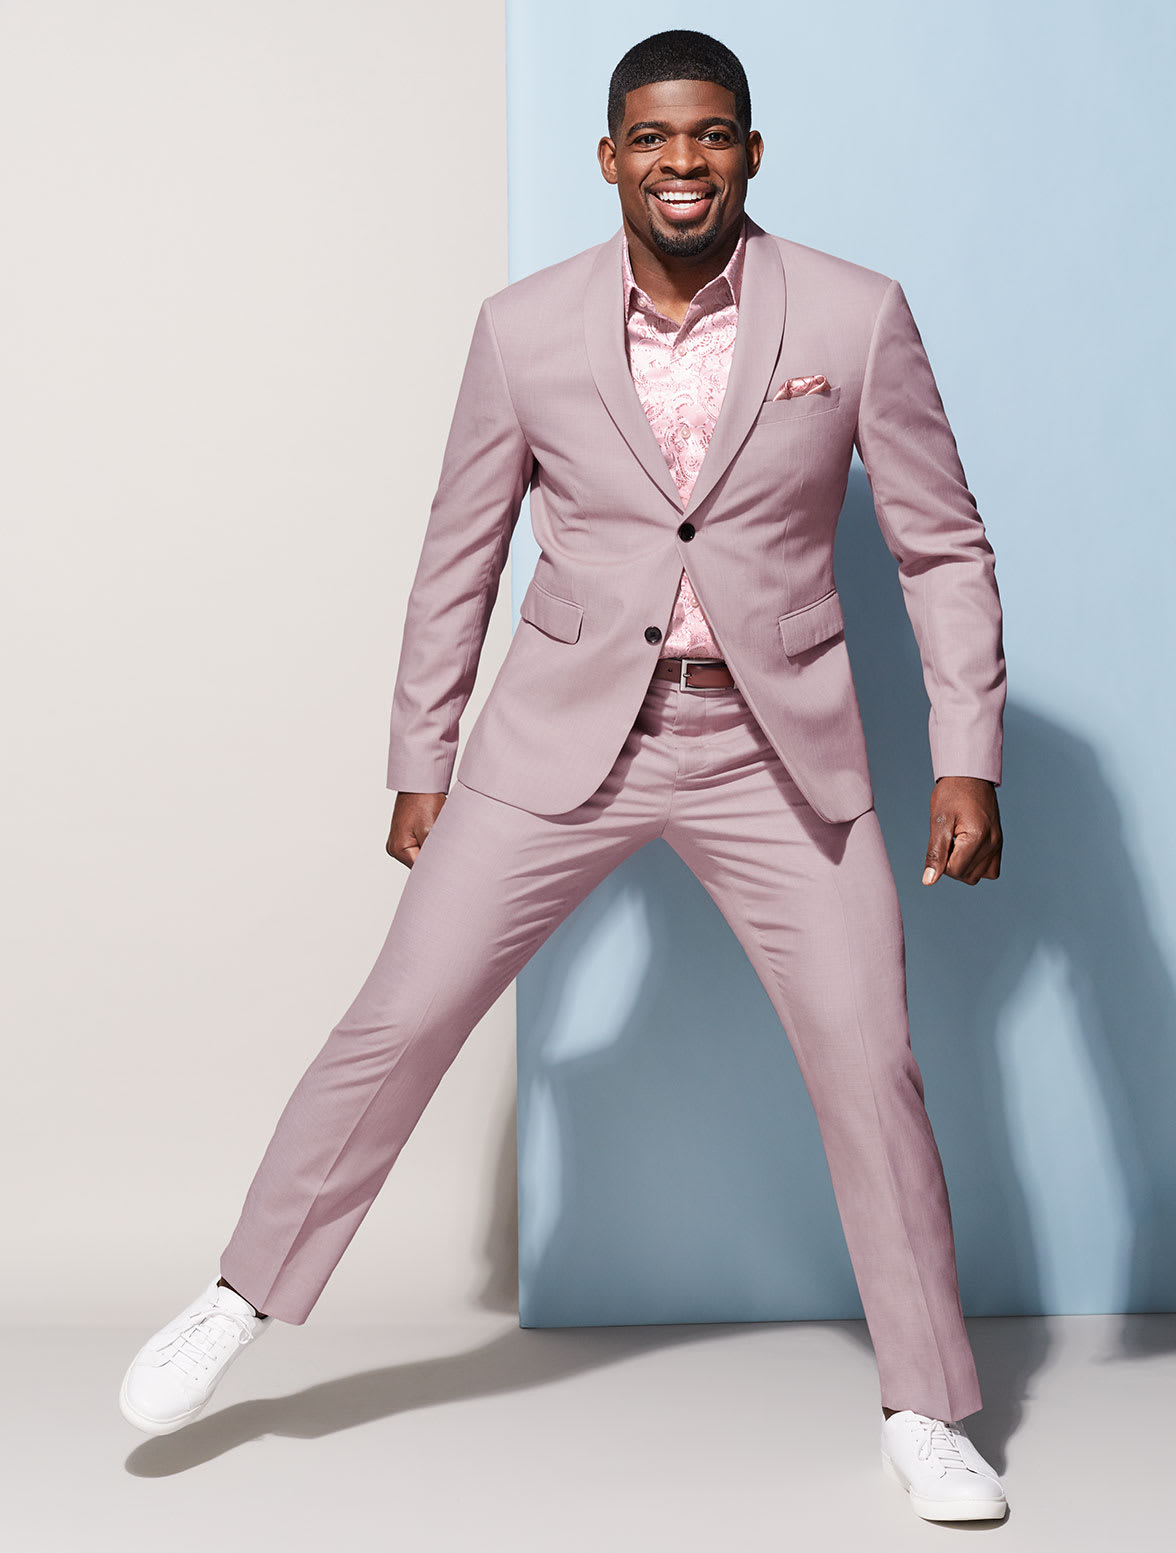 PK Subban in a Two-Tone Pink Suit